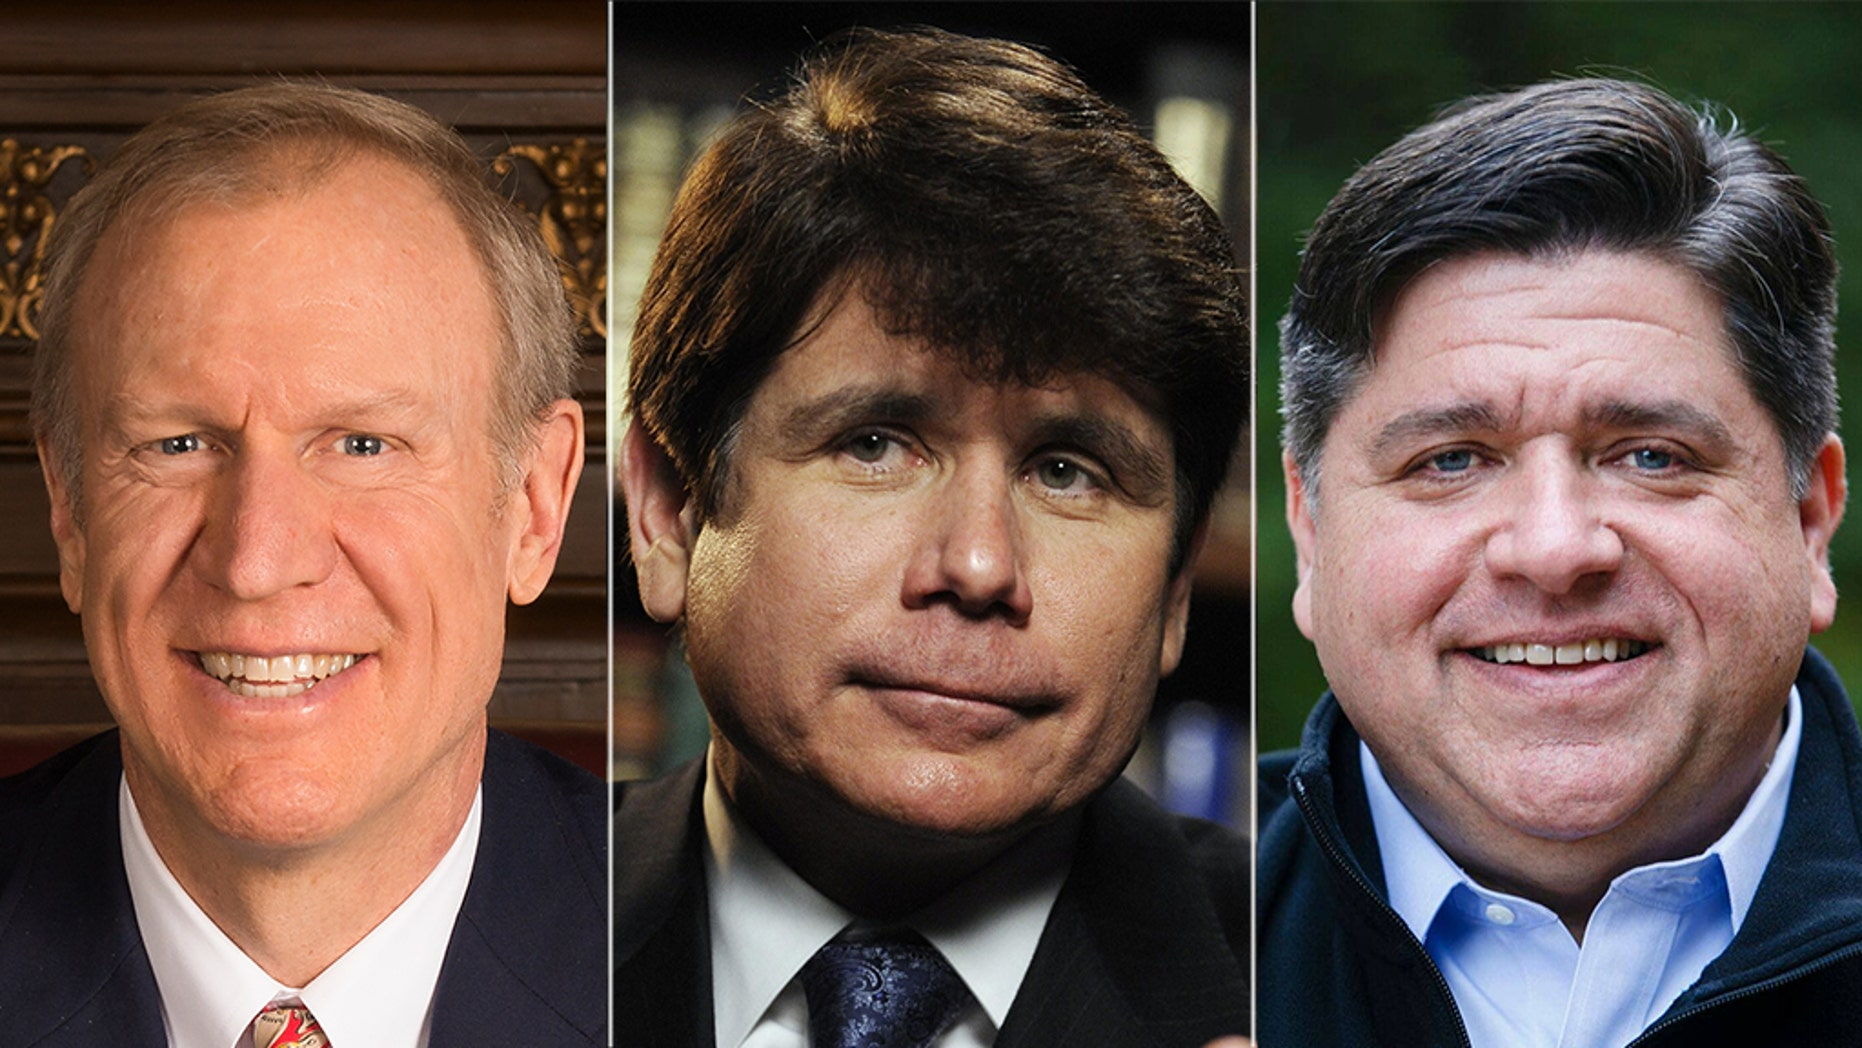 Illinois Gov. Bruce Rauner, left, is in a tough race against Democratic challenger J.B. Pritzker, right, who has ties to ex-Gov. Rod Blagojevich.